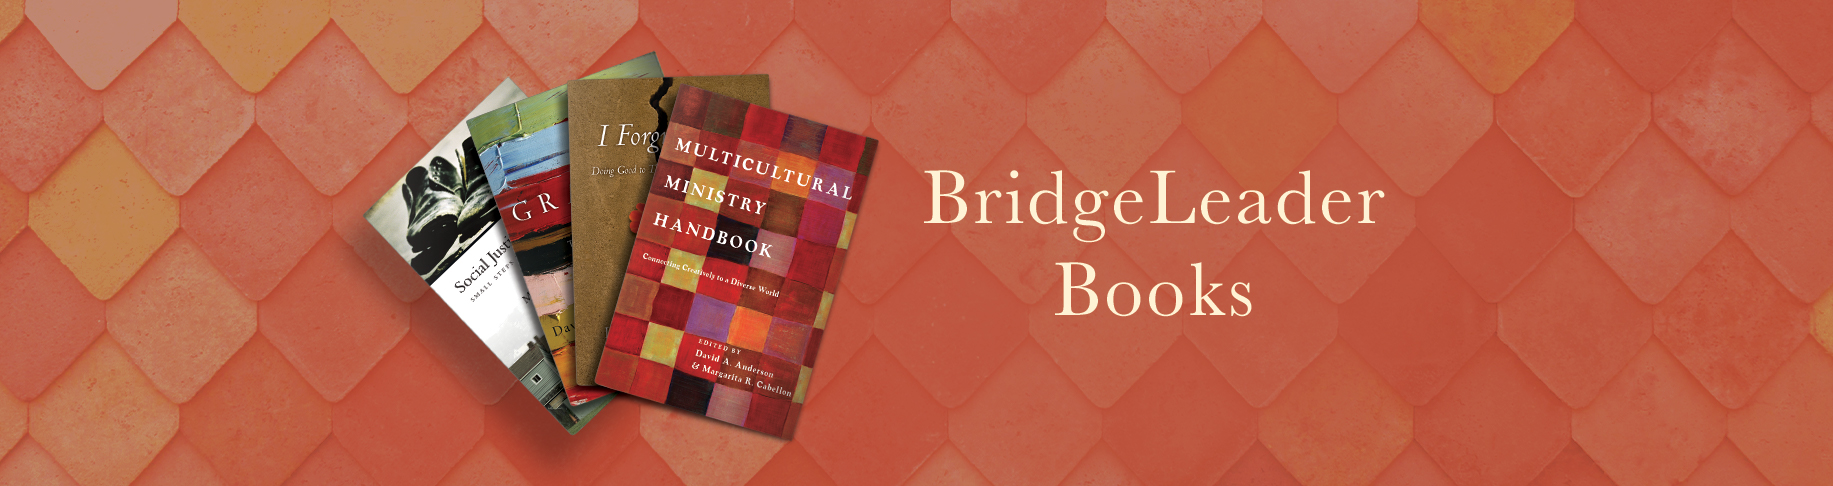 BridgeLeader Books